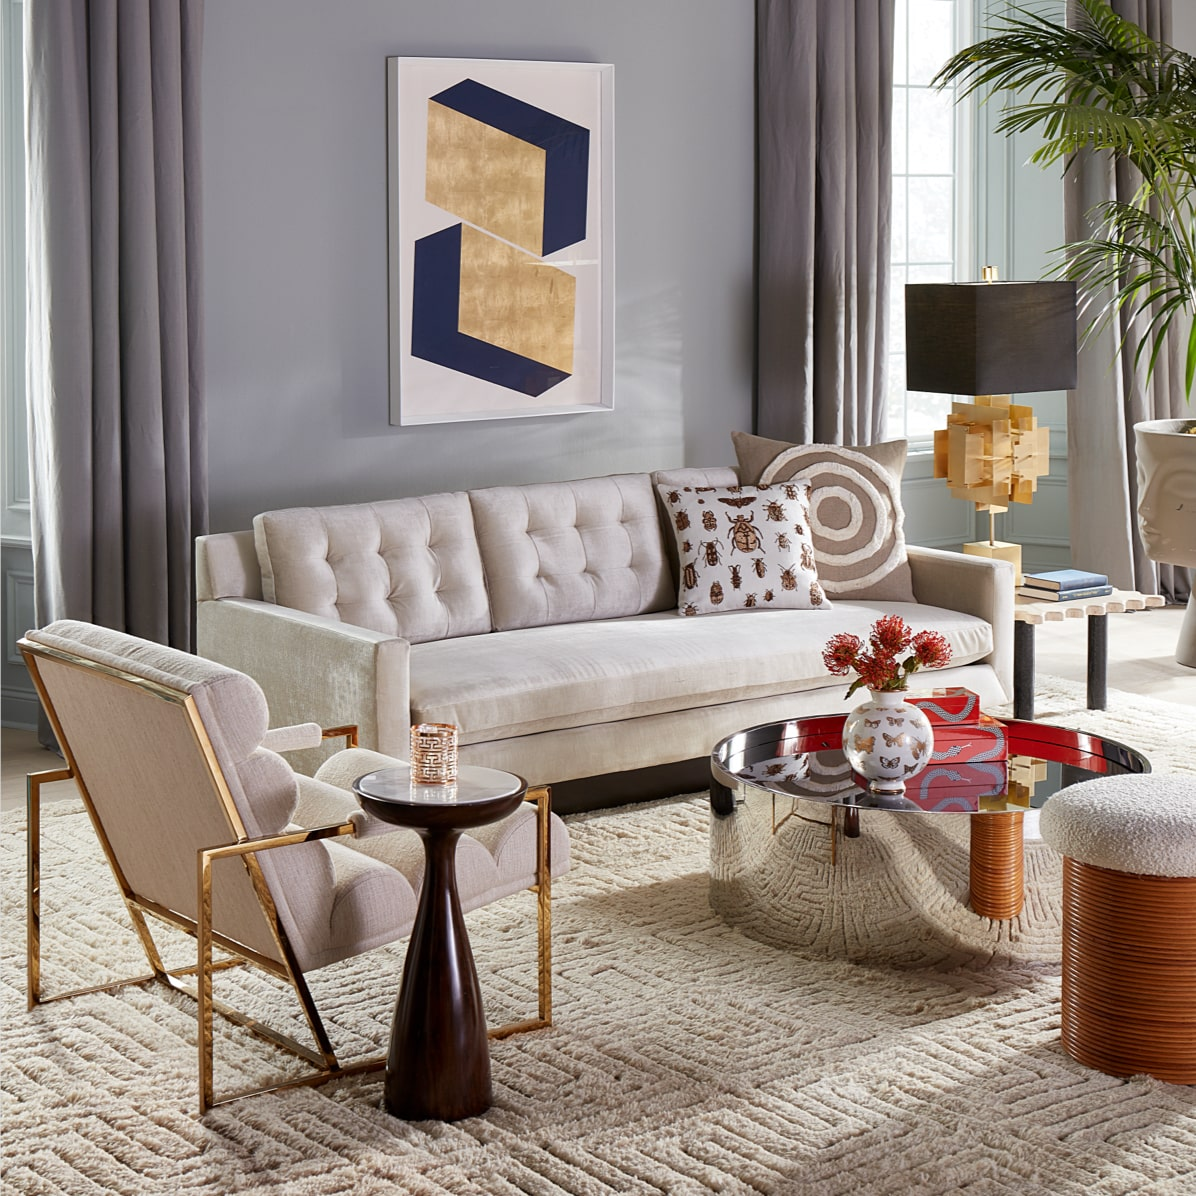 Follow @jonathanadler on Instagram